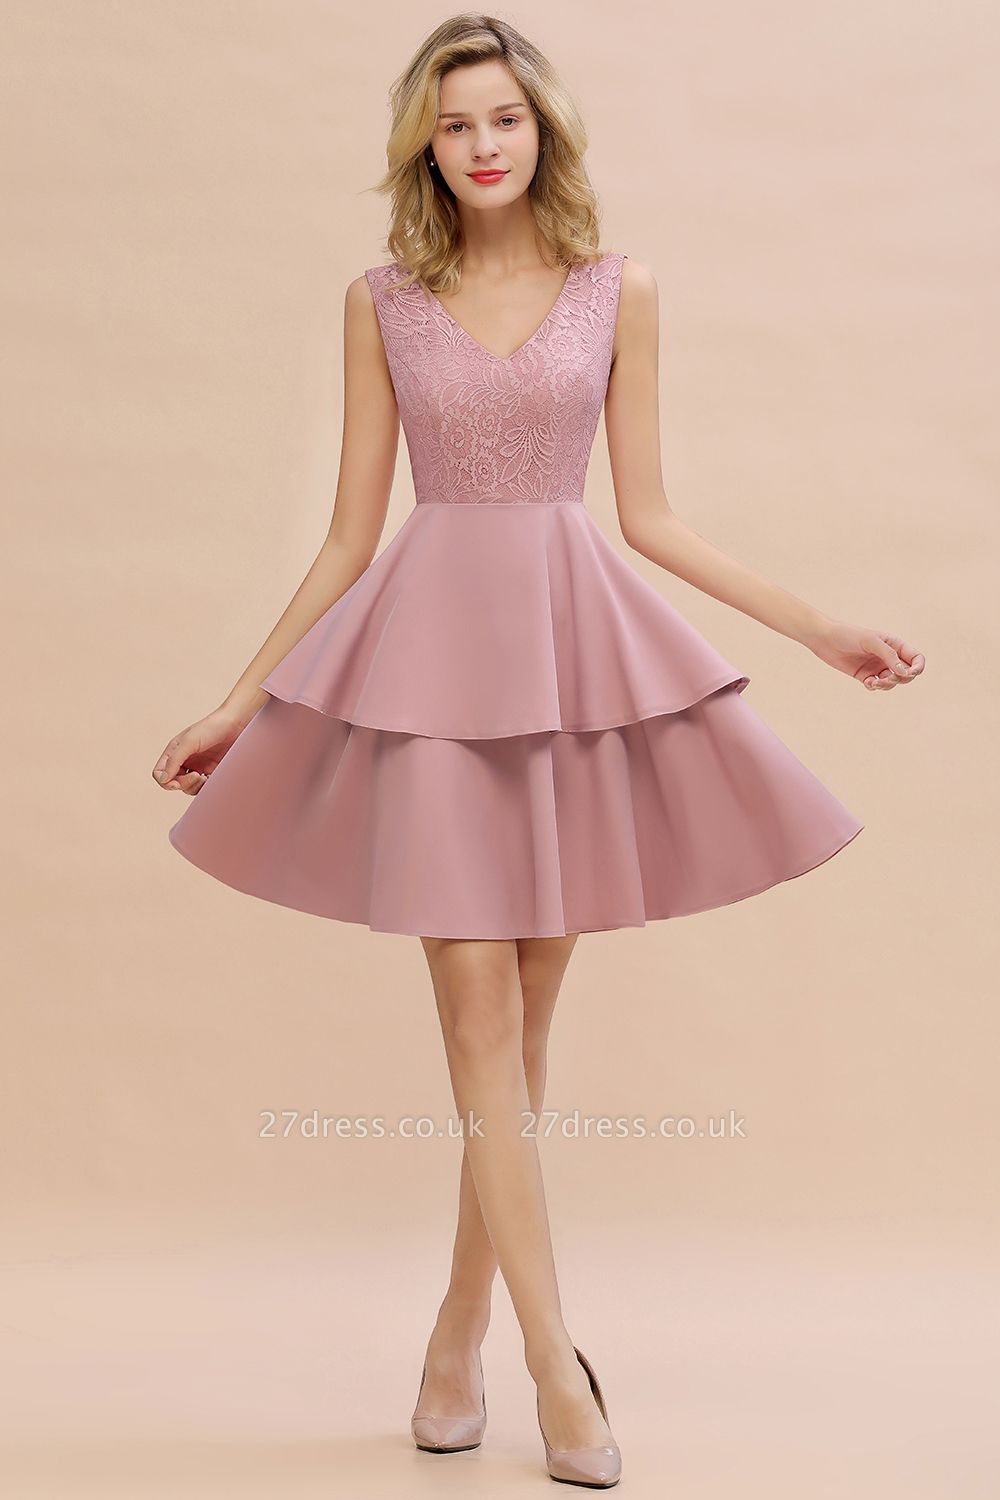 Cheap Homecoming Dresses with Ruffles Skirt | Sexy Short Evening Dresses UK